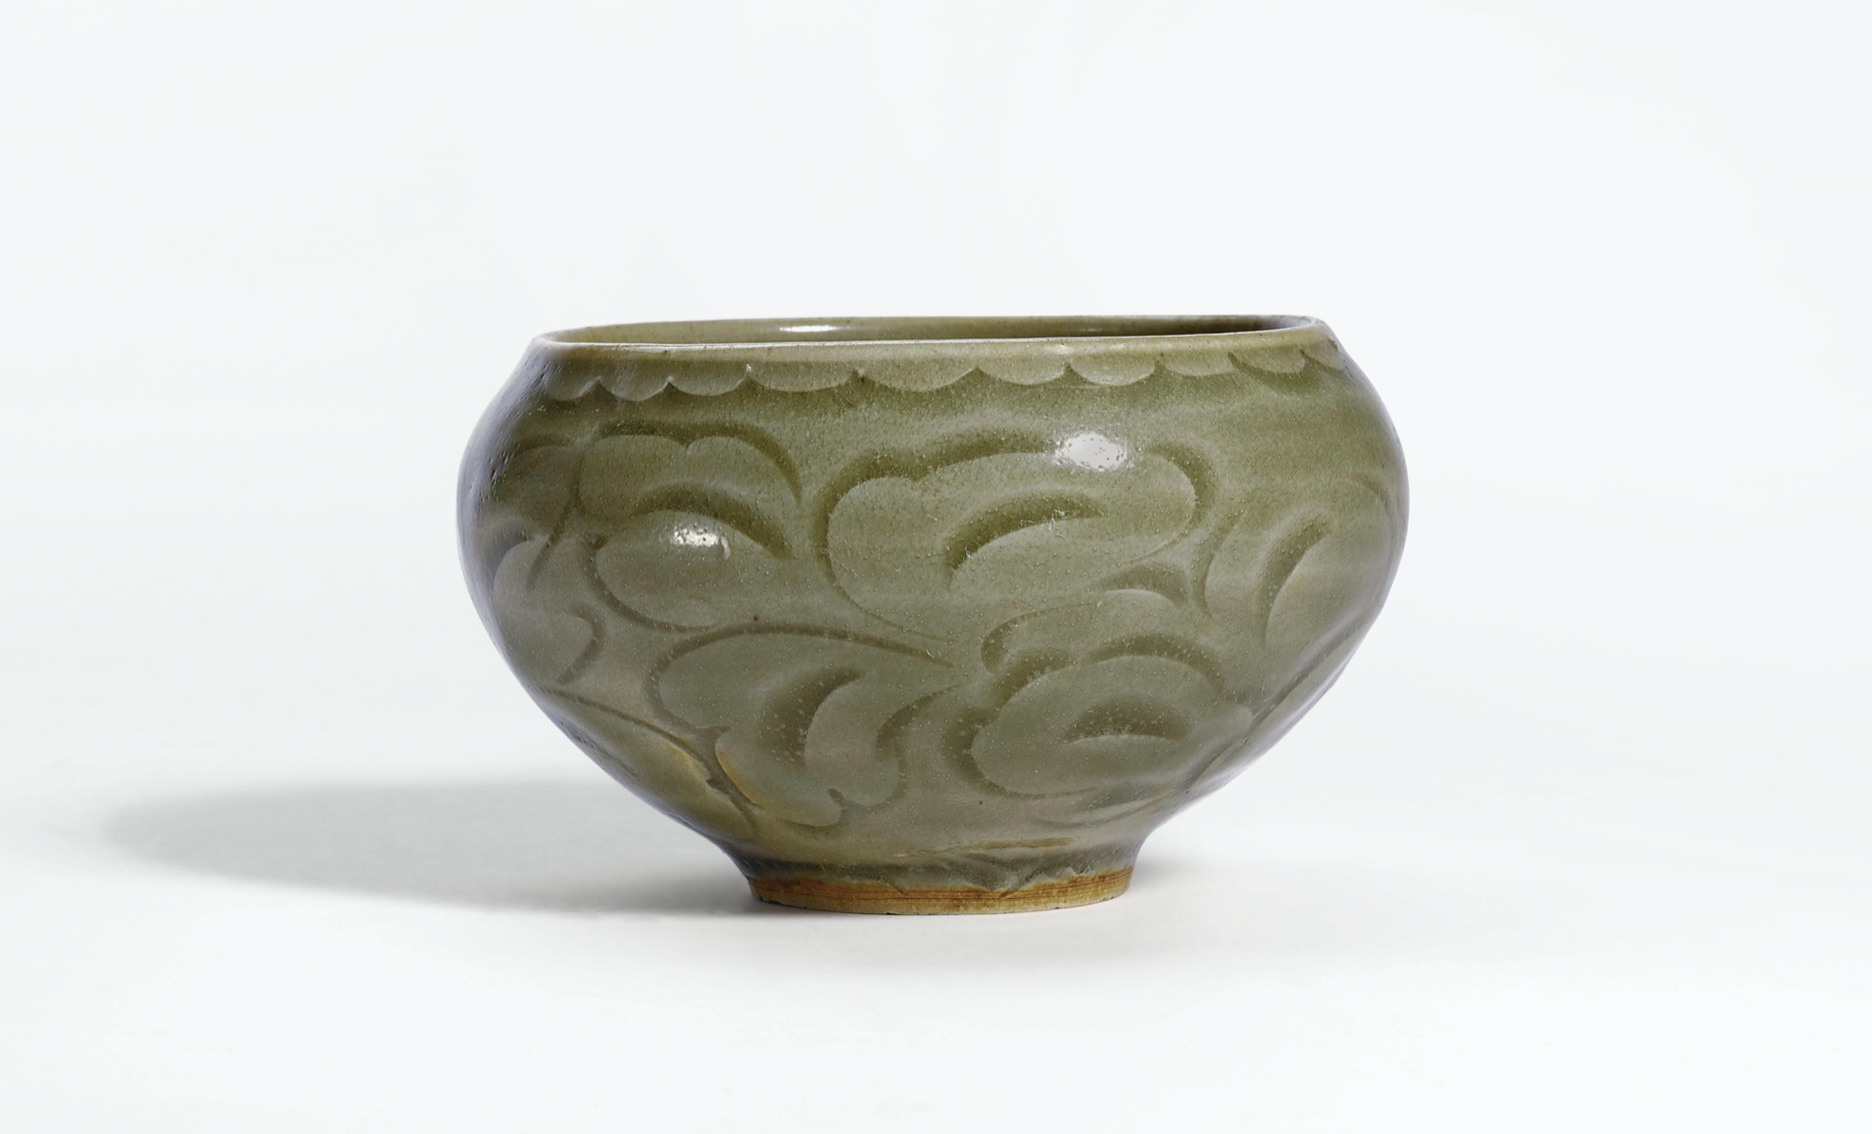 A small carved 'Yaozhou' bowl incised with floral pattern, Northern Song dynasty, Dimensions: 9.5cm diameter